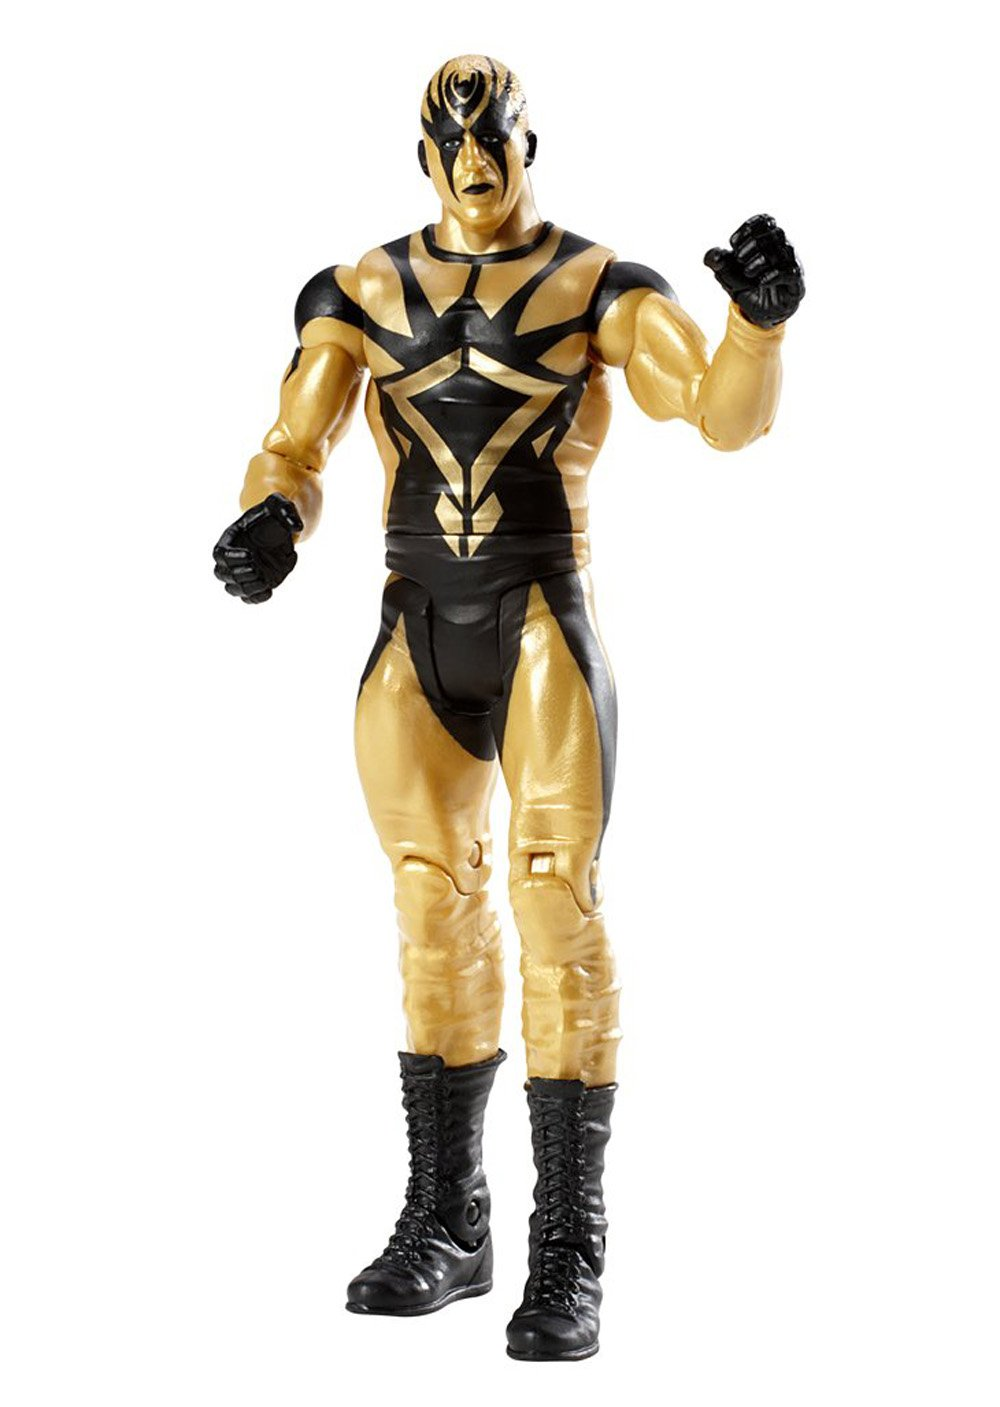 WWE Golddust Figure Series #4 by Mattel